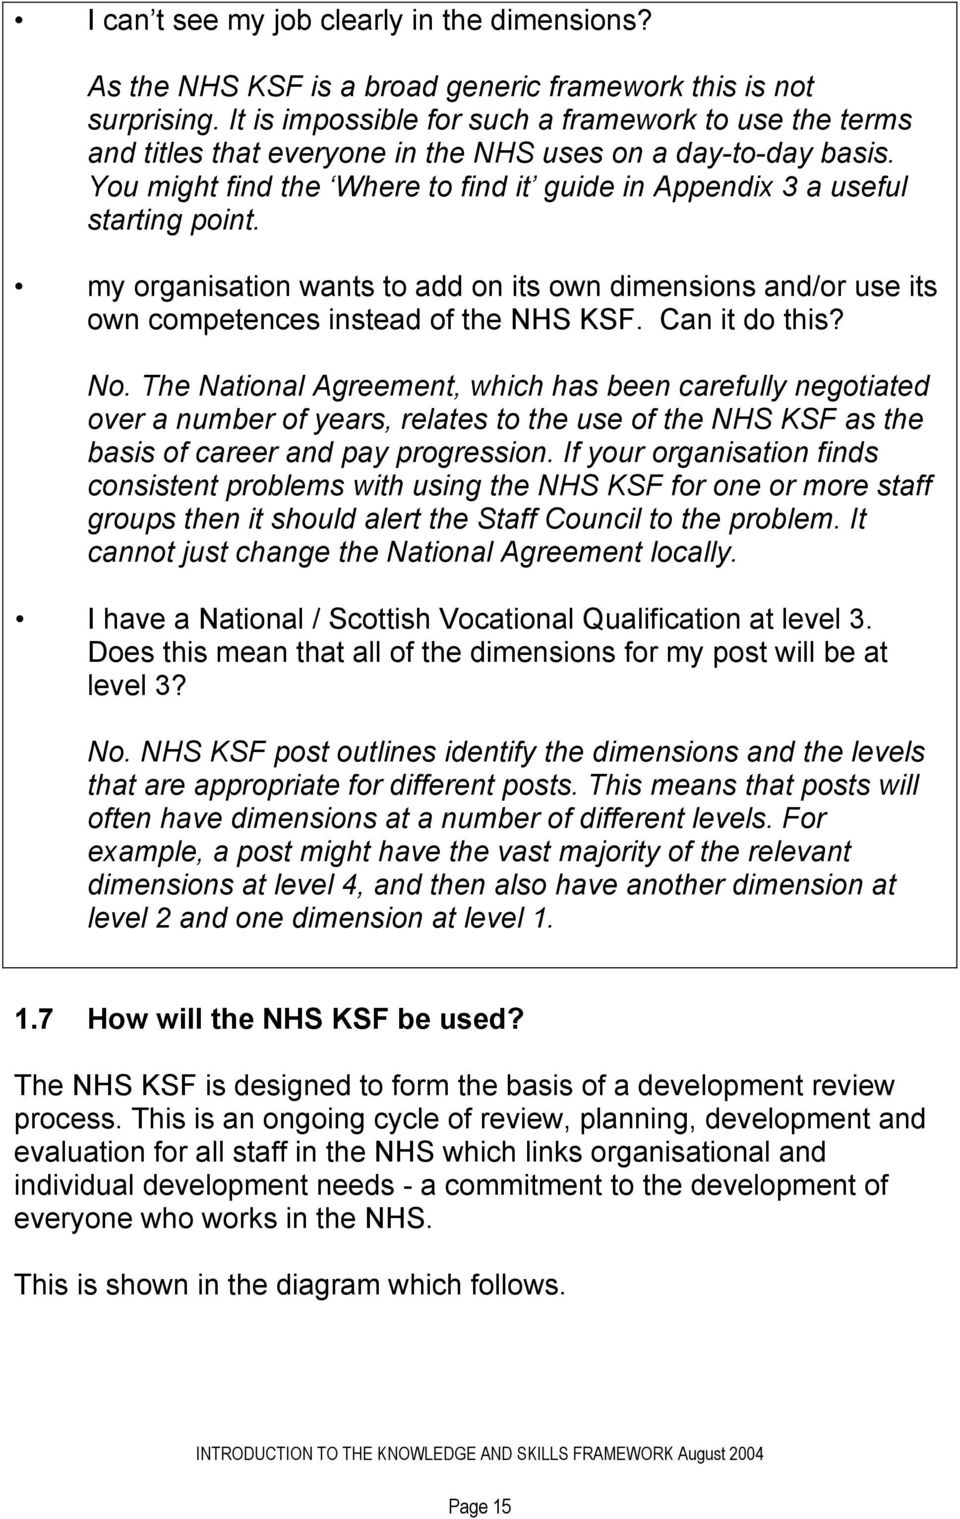 my organisation wants to add on its own dimensions and/or use its own competences instead of the NHS KSF. Can it do this? No.